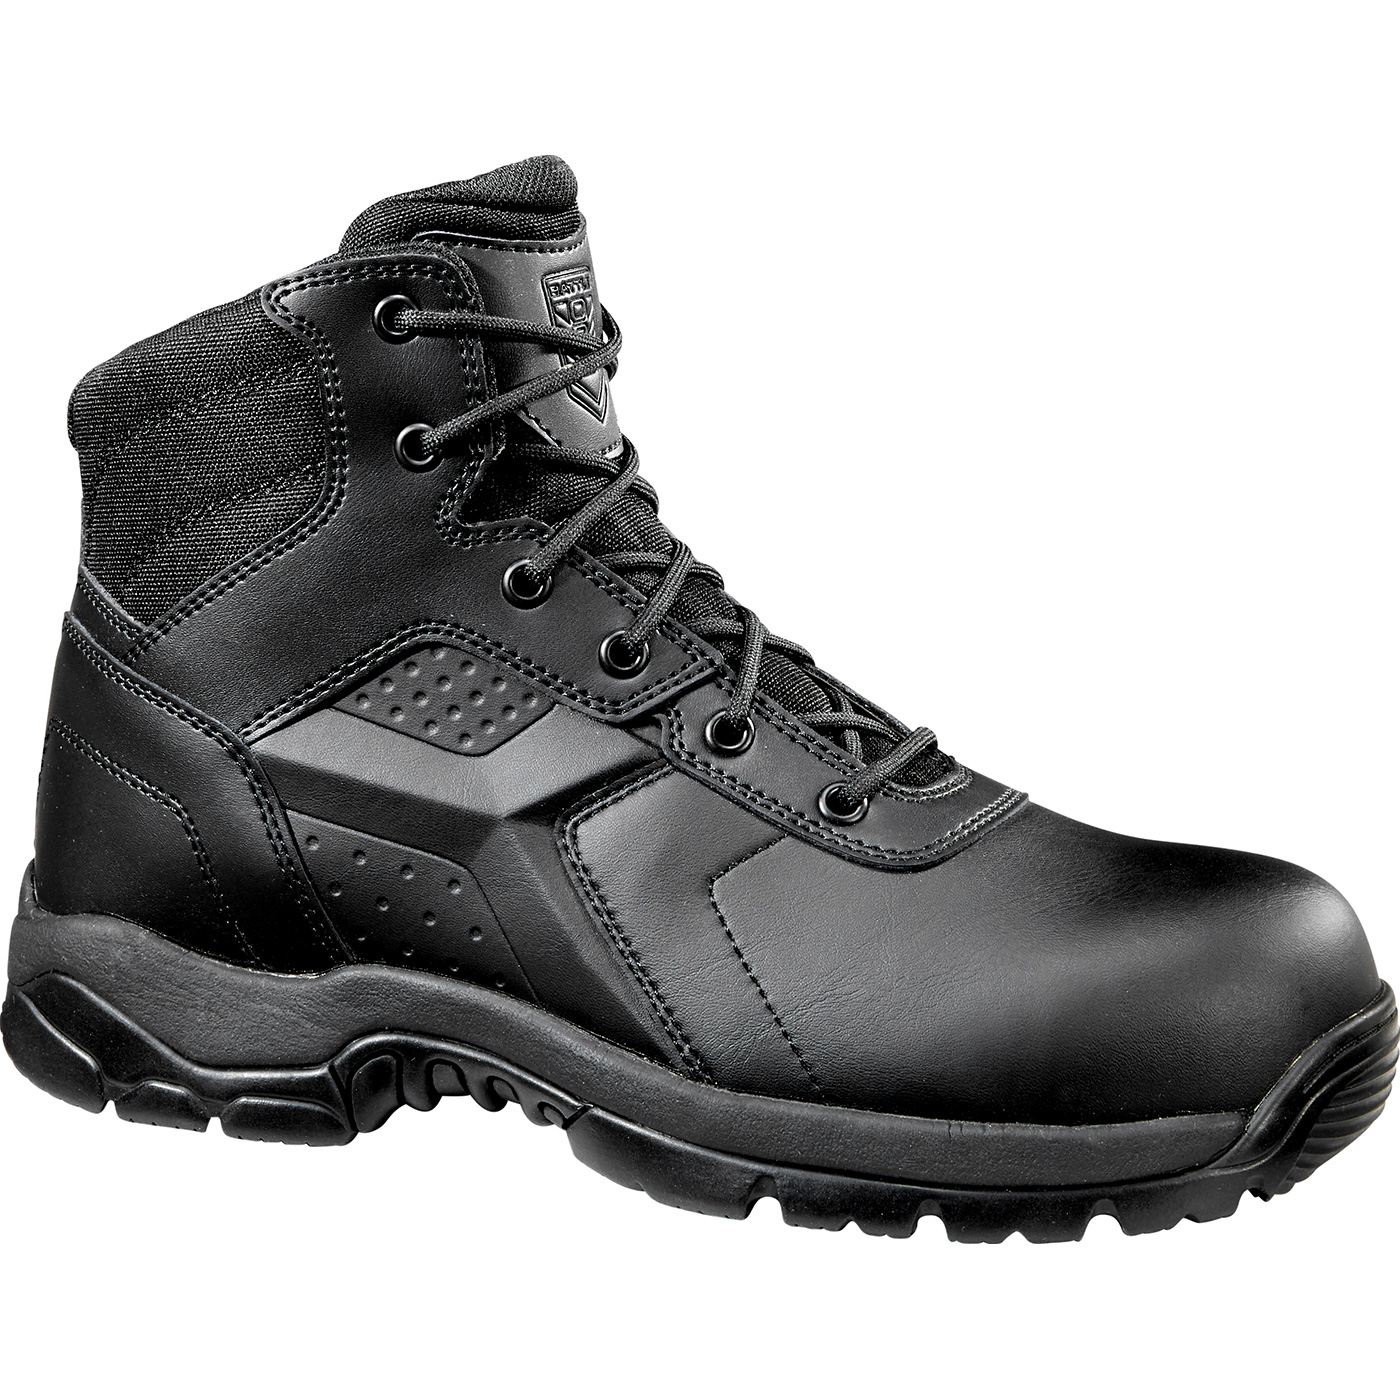 8b762b6ec21 Battle Ops Men's 6 inch Composite Toe Electrical Hazard Waterproof Zipper  Tactical Boot